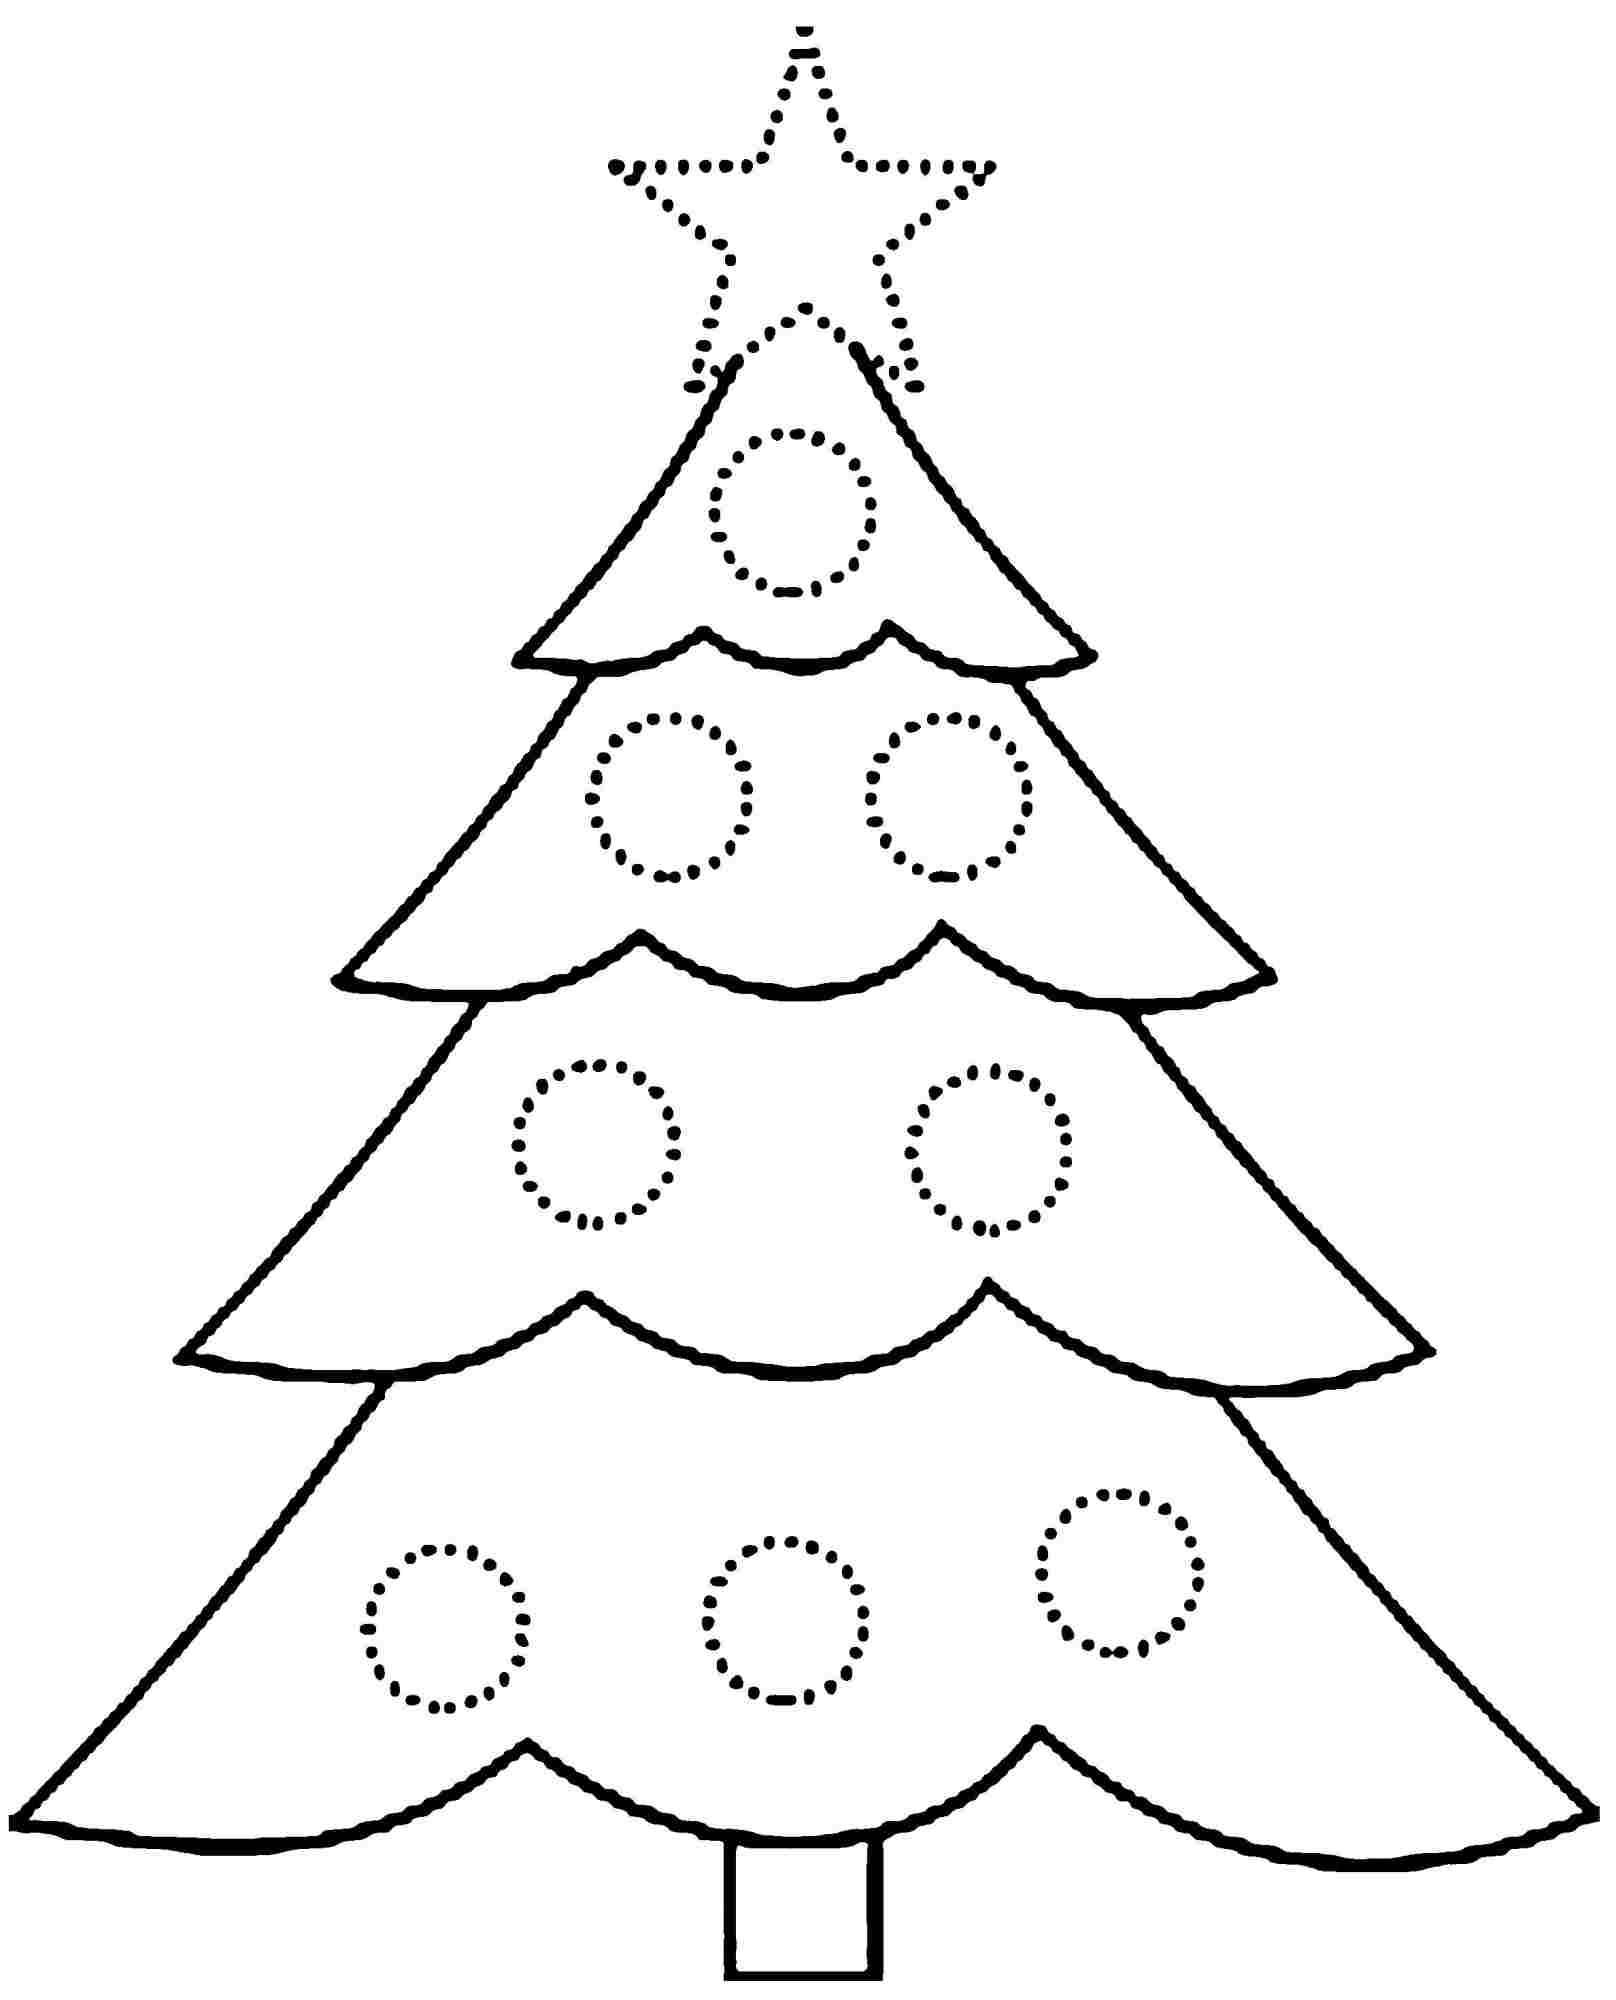 Coloring Christmas Tree Idealstalist Gallery Of Apple Tree Coloring Page with Coloring Pages Apple orchard Download Download